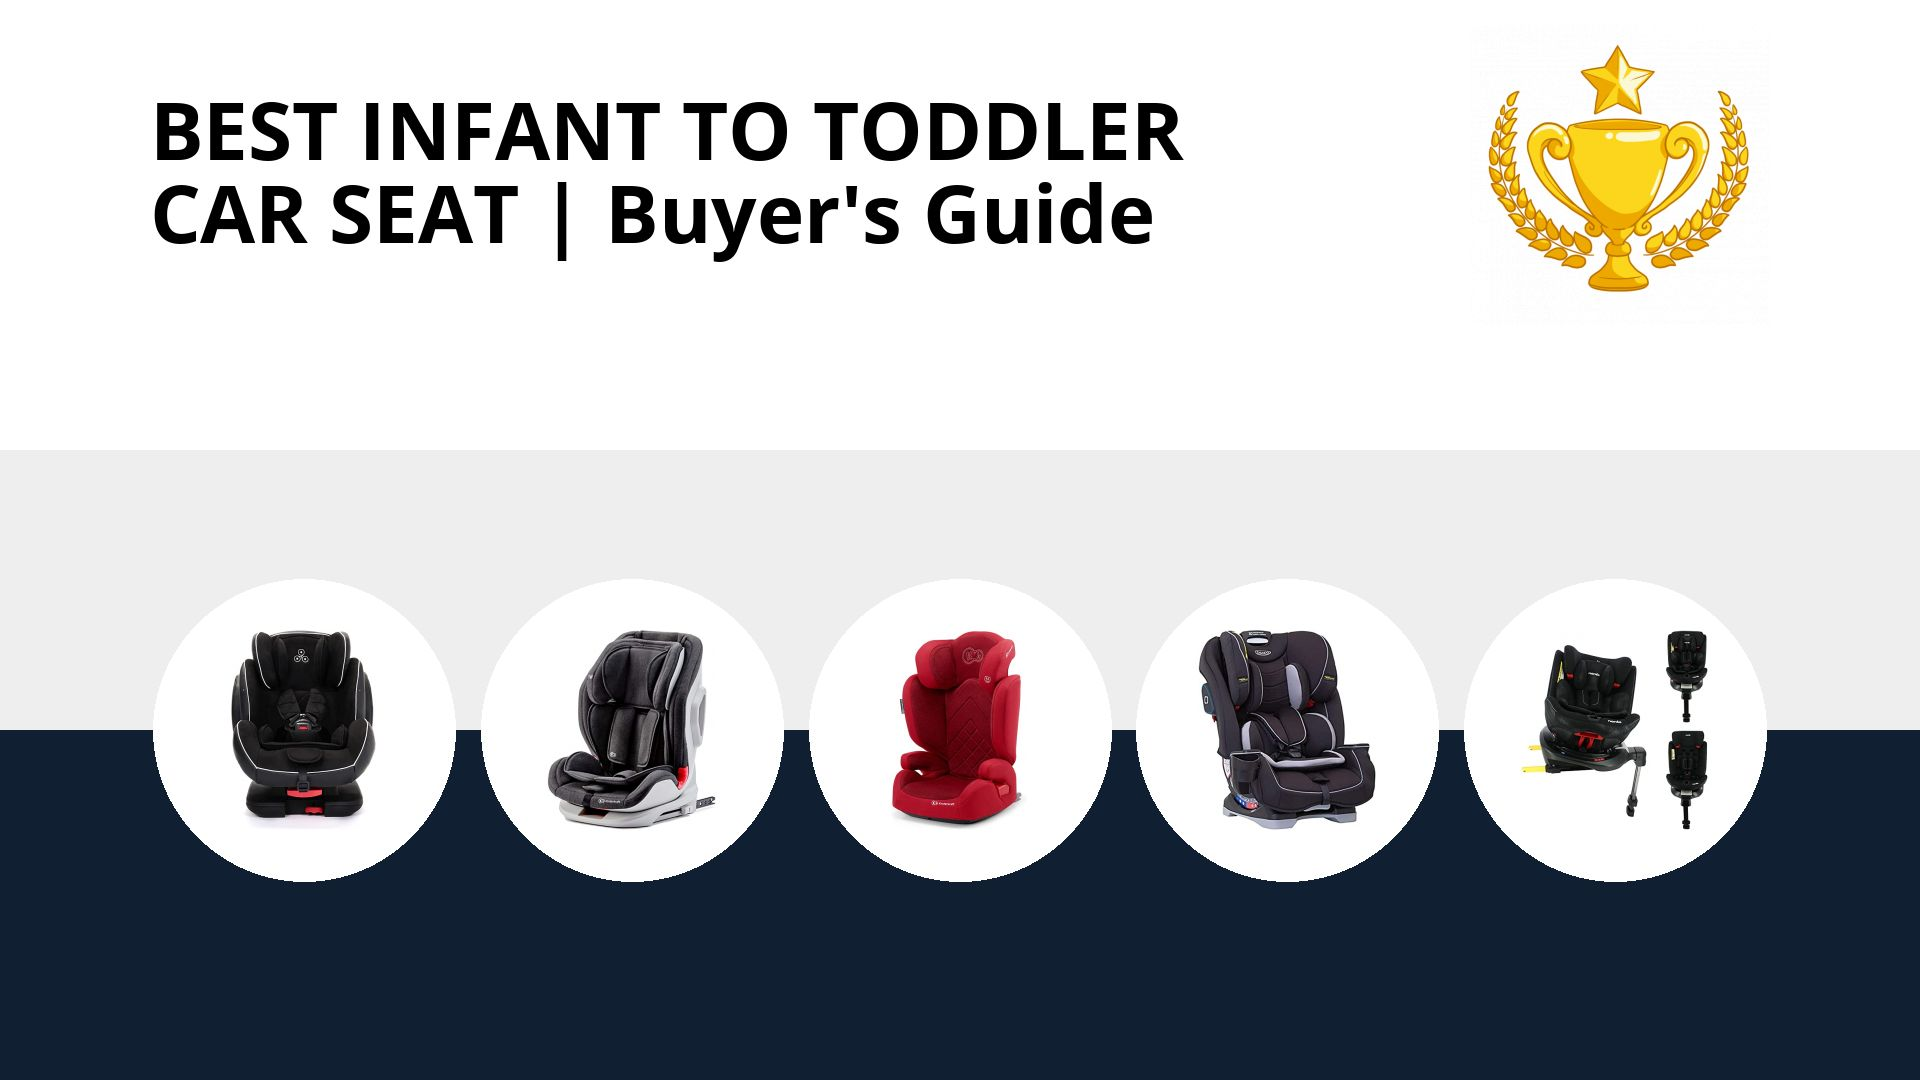 Best Infant To Toddler Car Seat: image